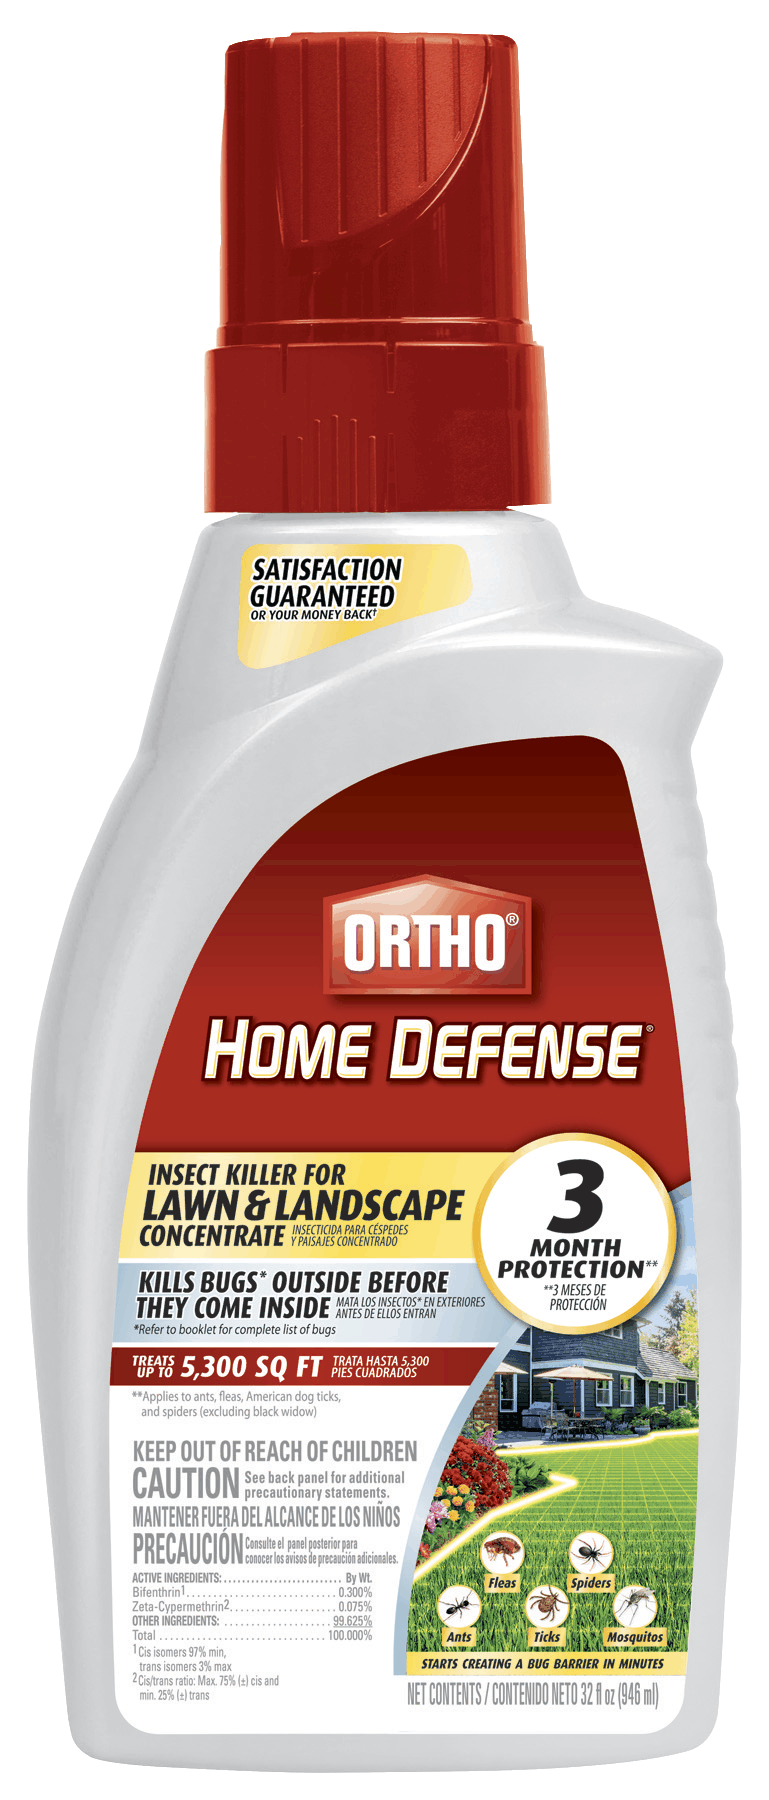 Will Ortho Home Defense Insect Killer Kill Bed Bugs